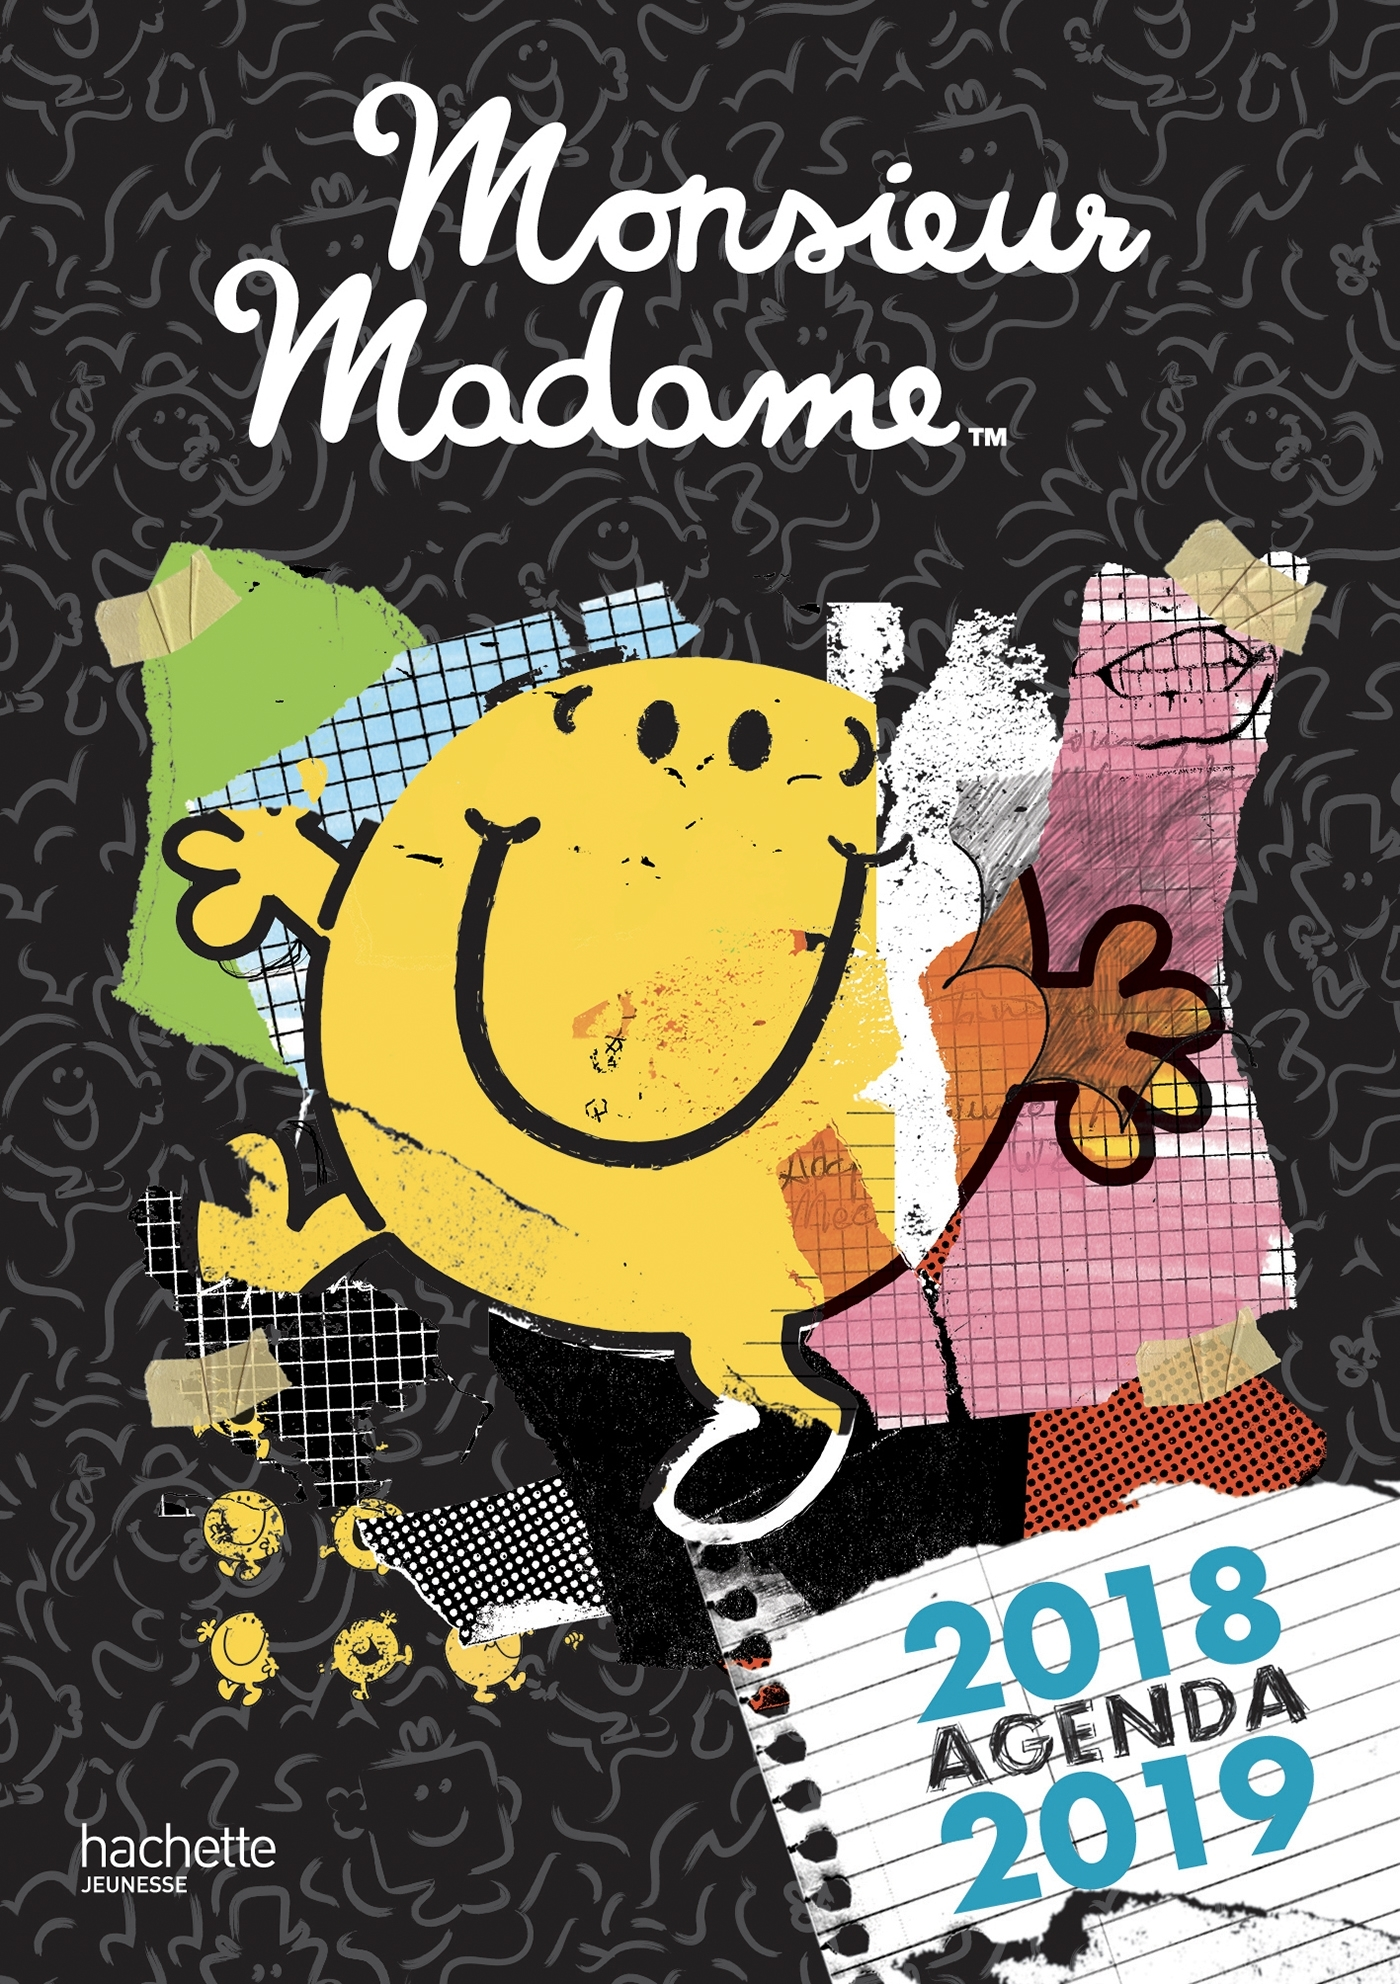 MONSIEUR MADAME - AGENDA 2018-2019